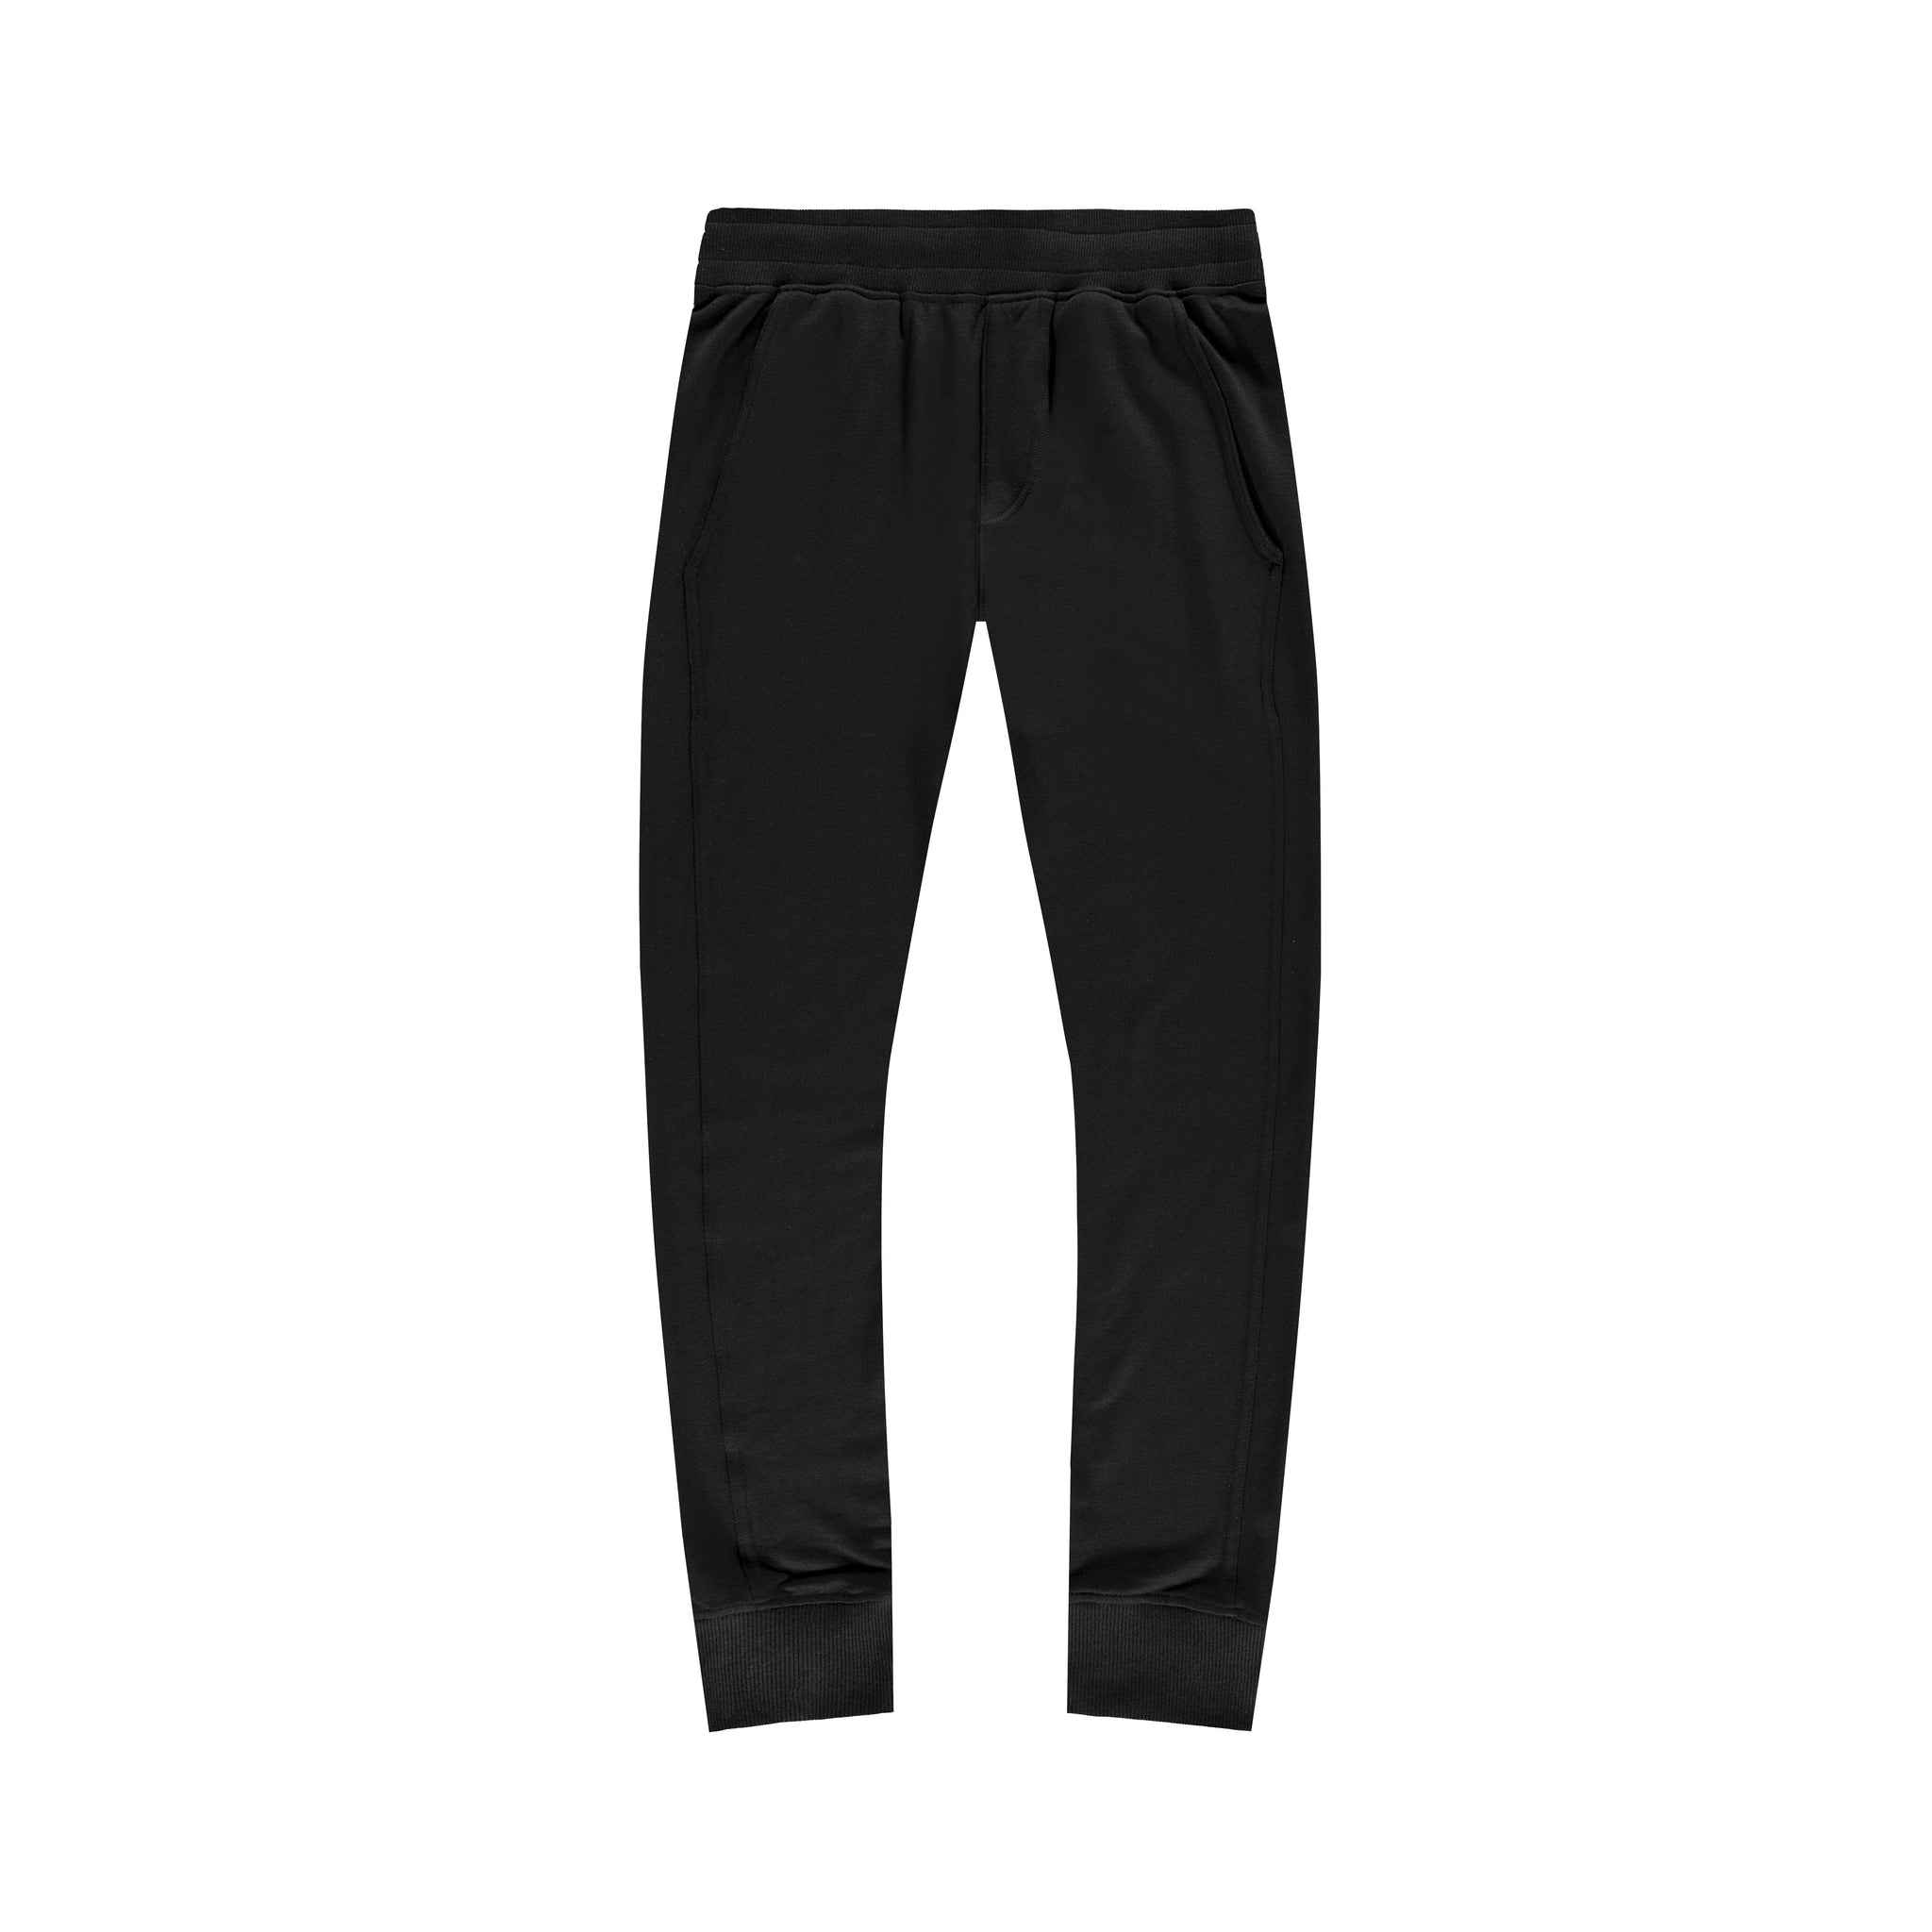 Panel Joggers in Black - Mitchell Evan